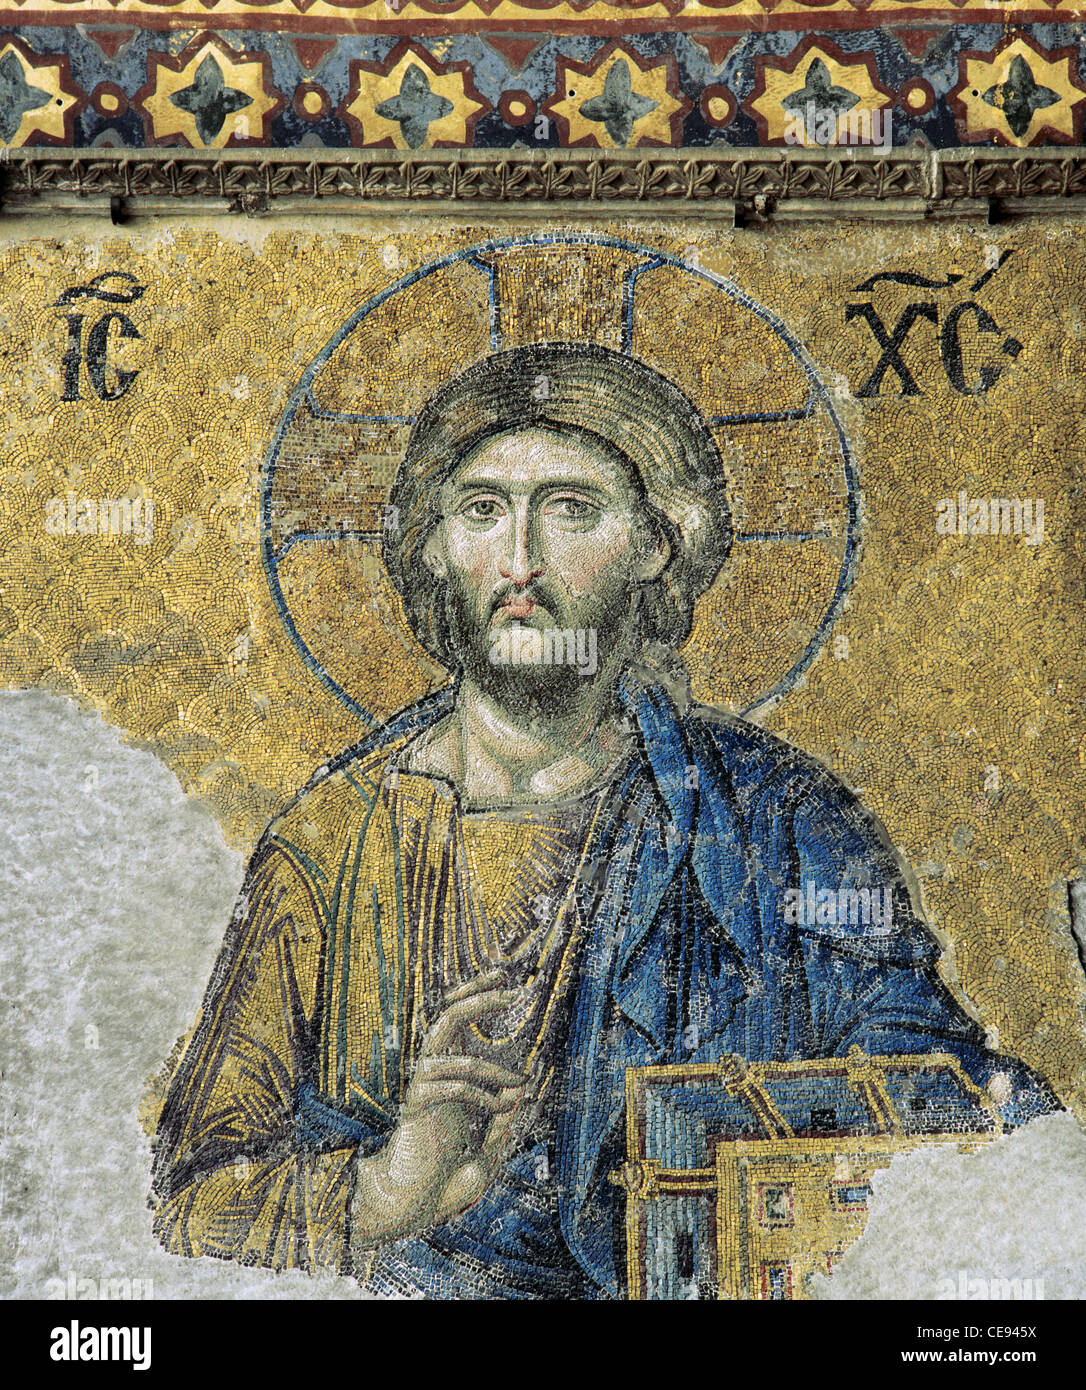 The Deesis. Detail. Jesus Christ in Majesty as if to bless. 13th century. Mosaic. Hagia Sophia. Istanbul. Turkey. - Stock Image